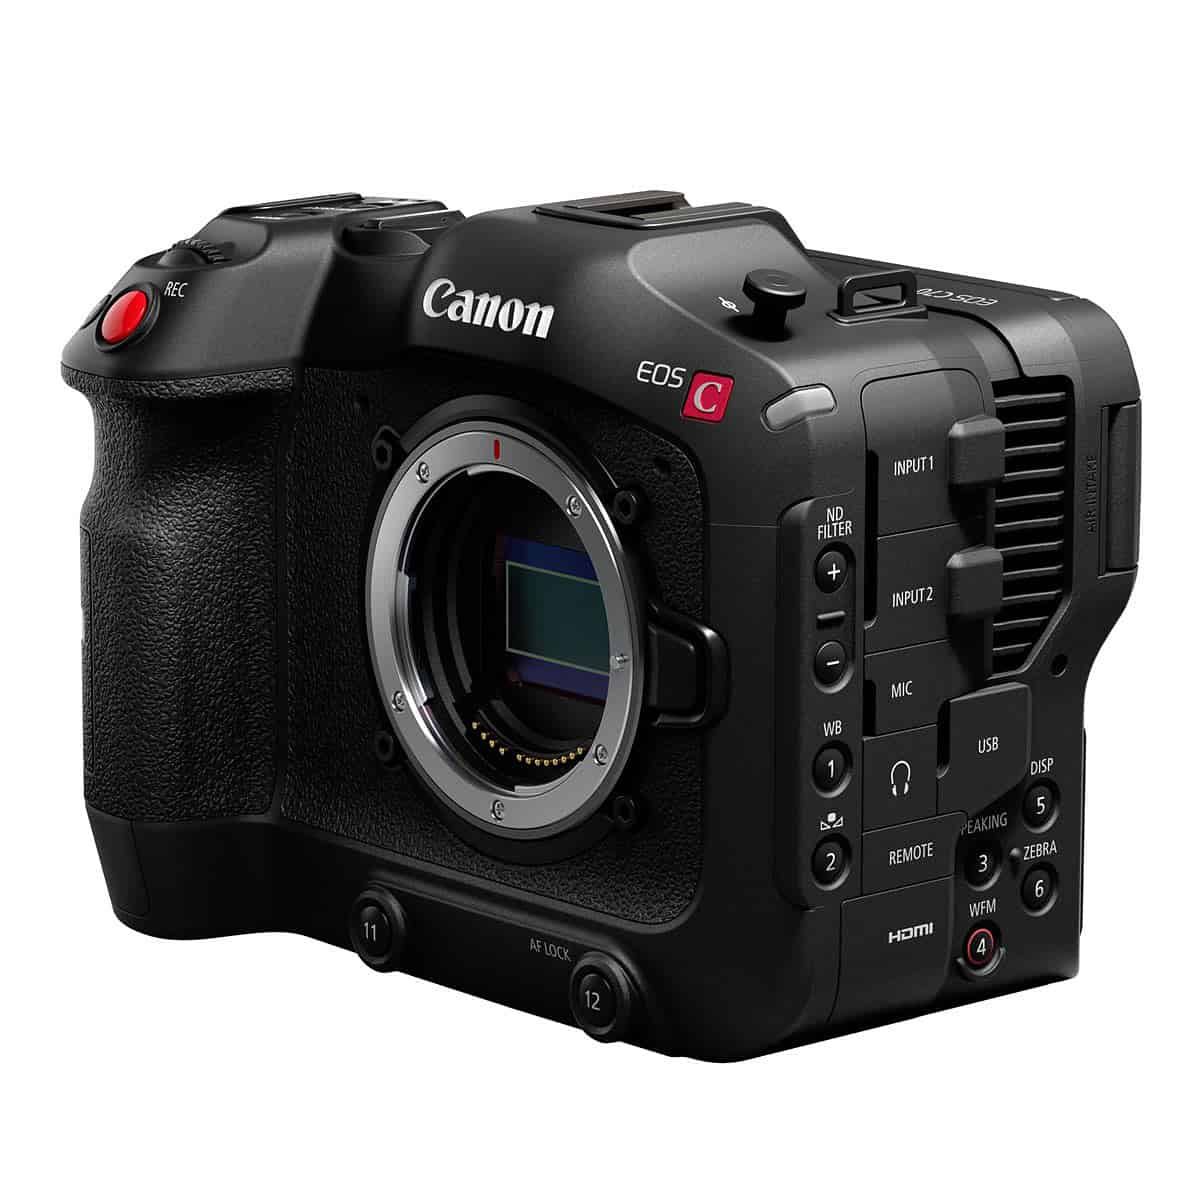 The #1 Cinema Camera for Corporate Video Production (The Best Choice)